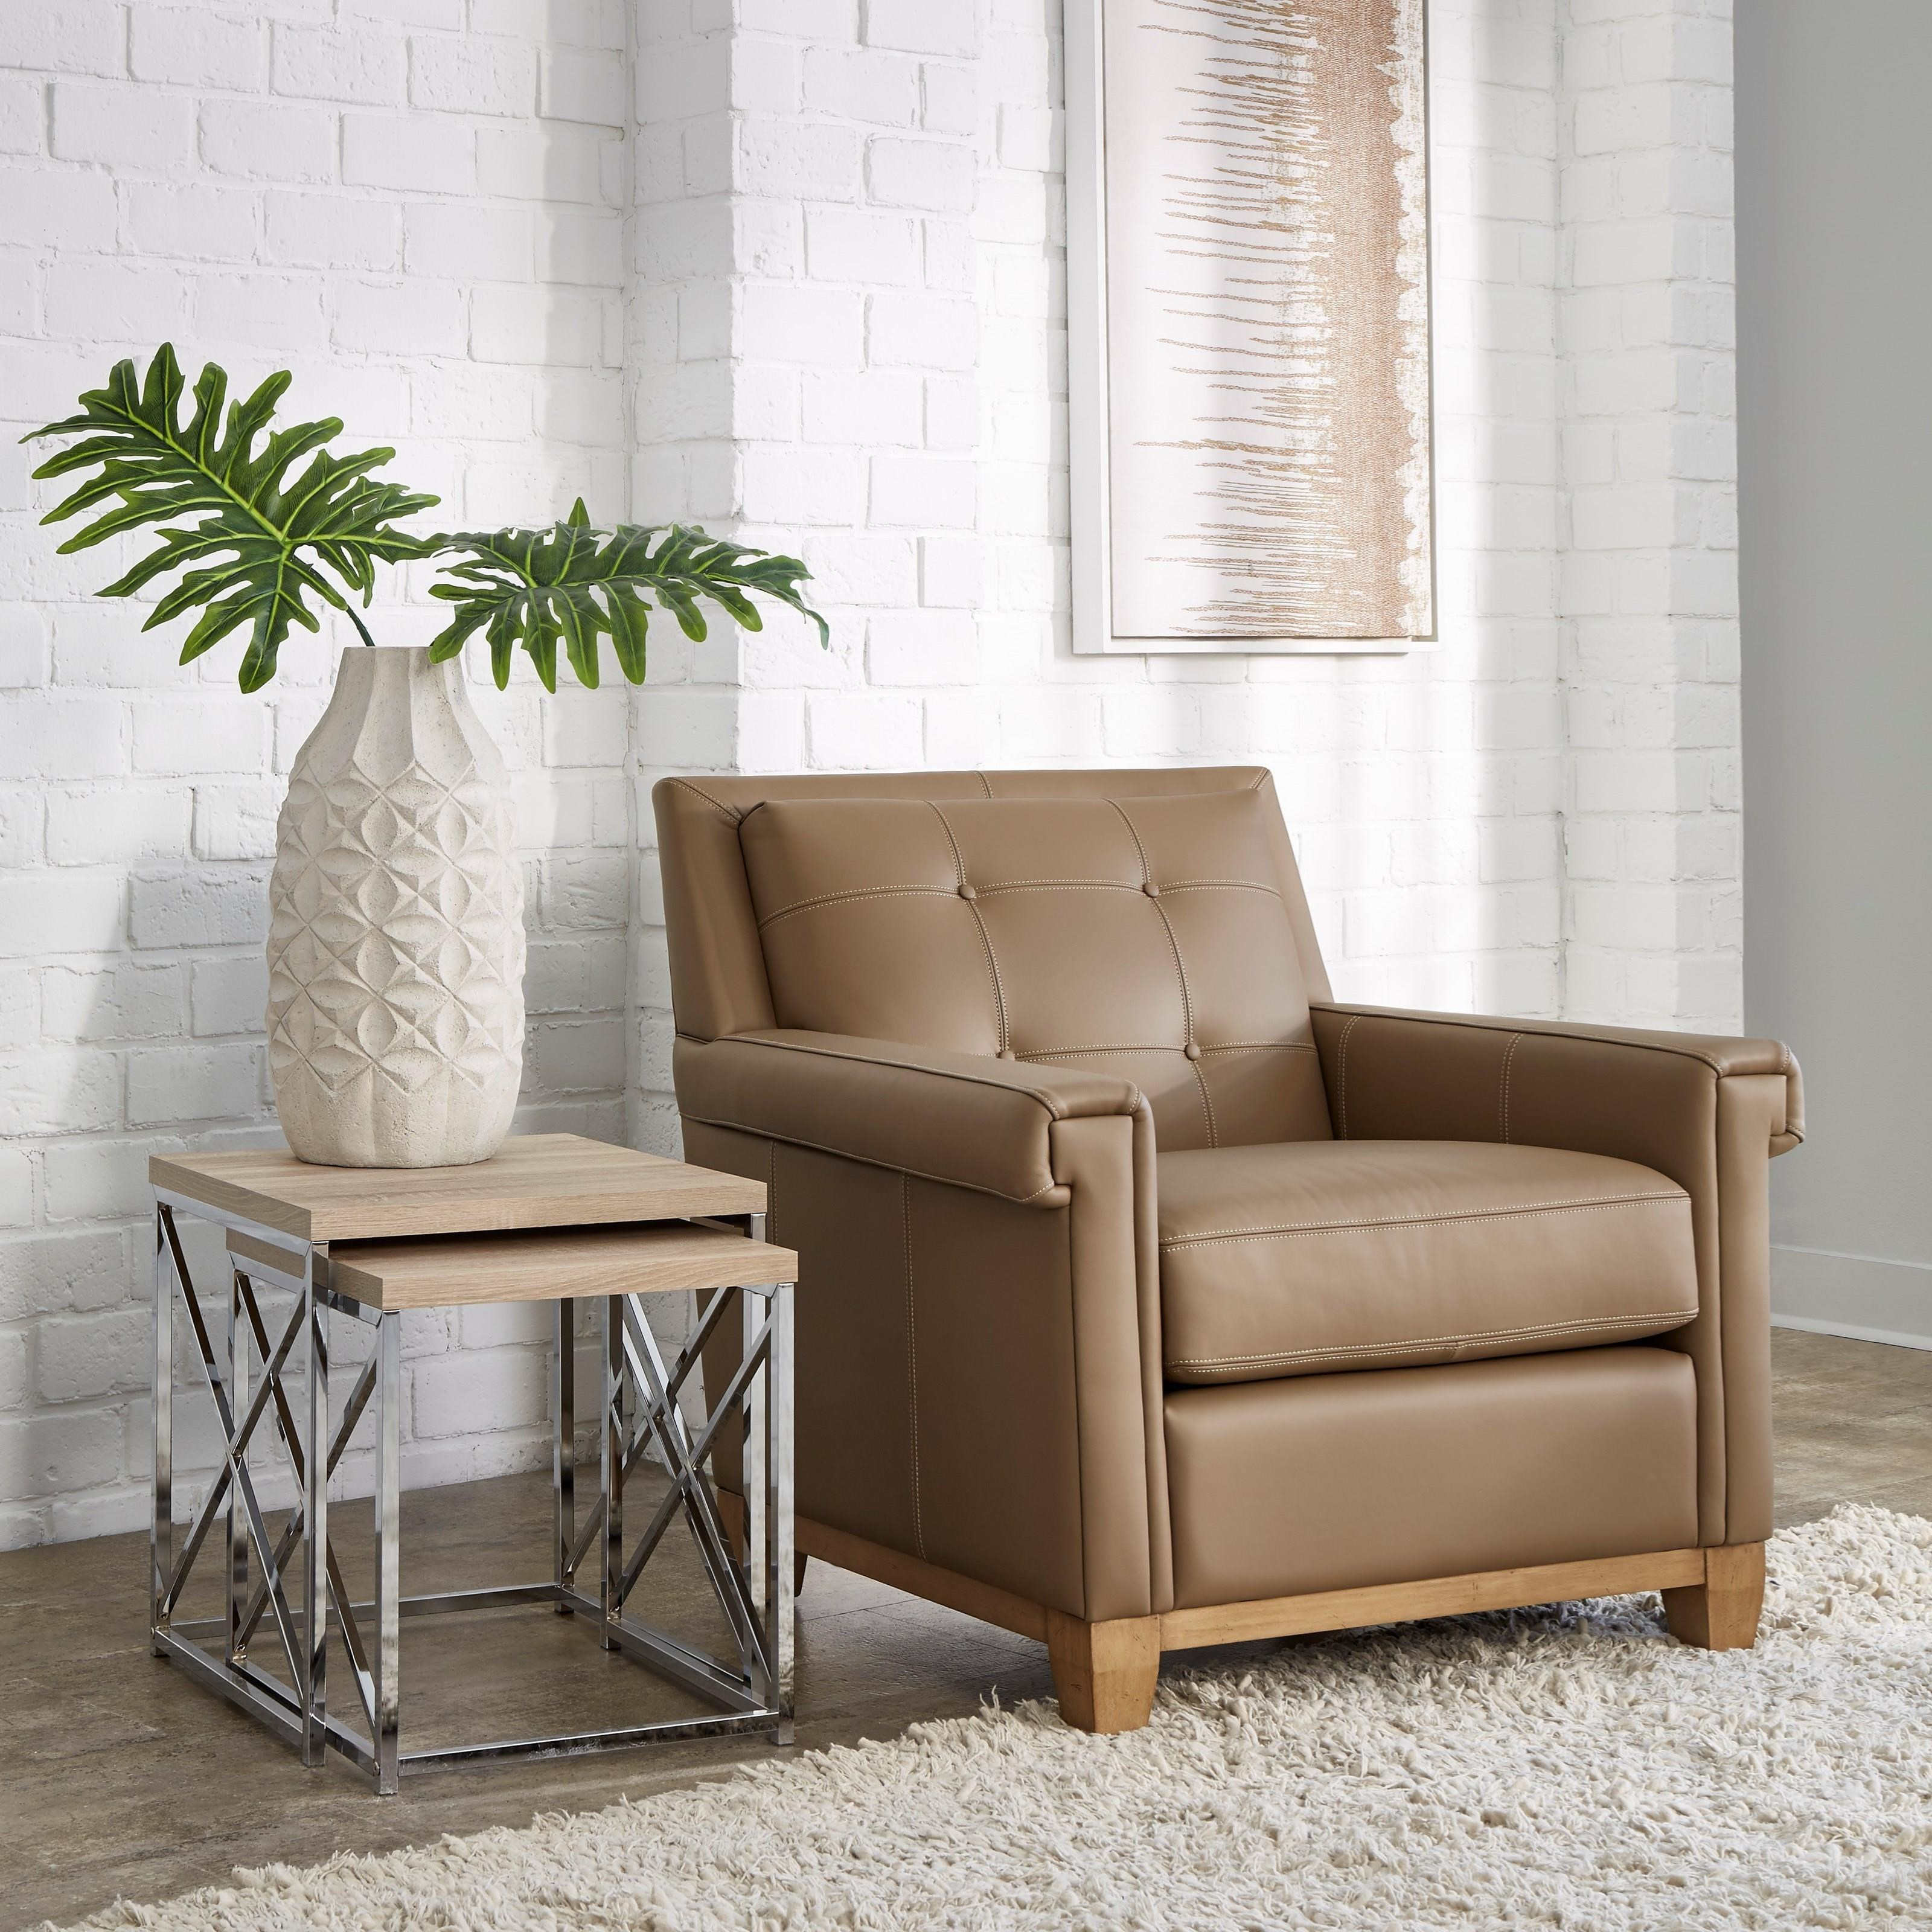 Bailey Matching Chair  by Pulaski Furniture at Powell's Furniture and Mattress